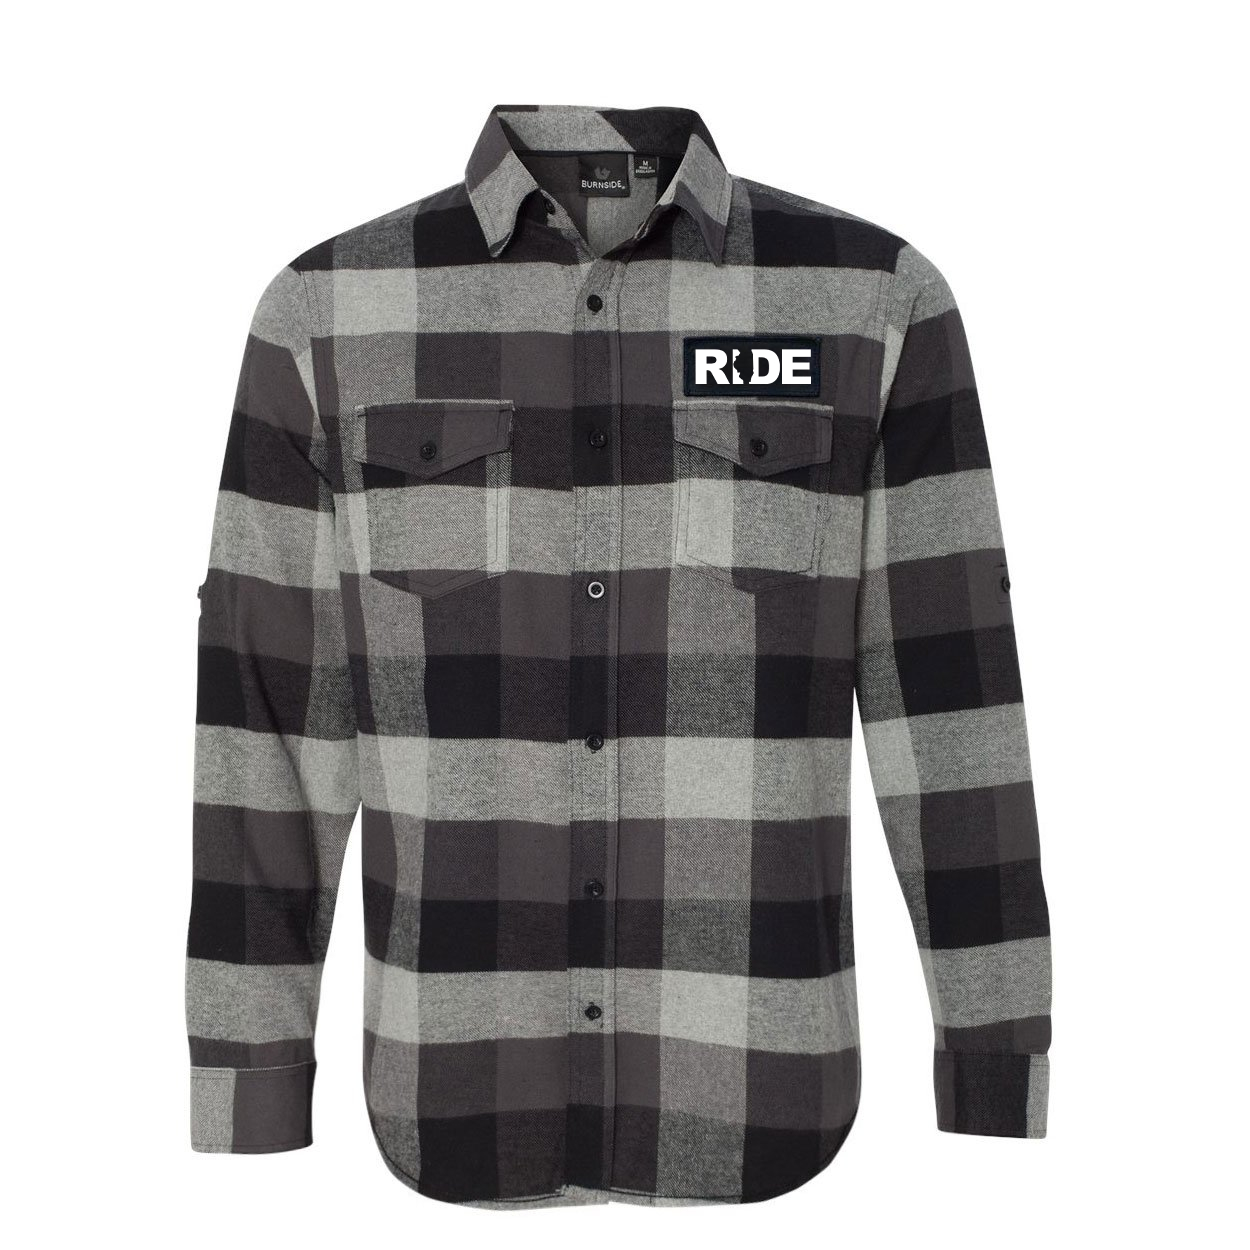 Ride Illinois Classic Unisex Long Sleeve Woven Patch Flannel Shirt Black/Gray (White Logo)